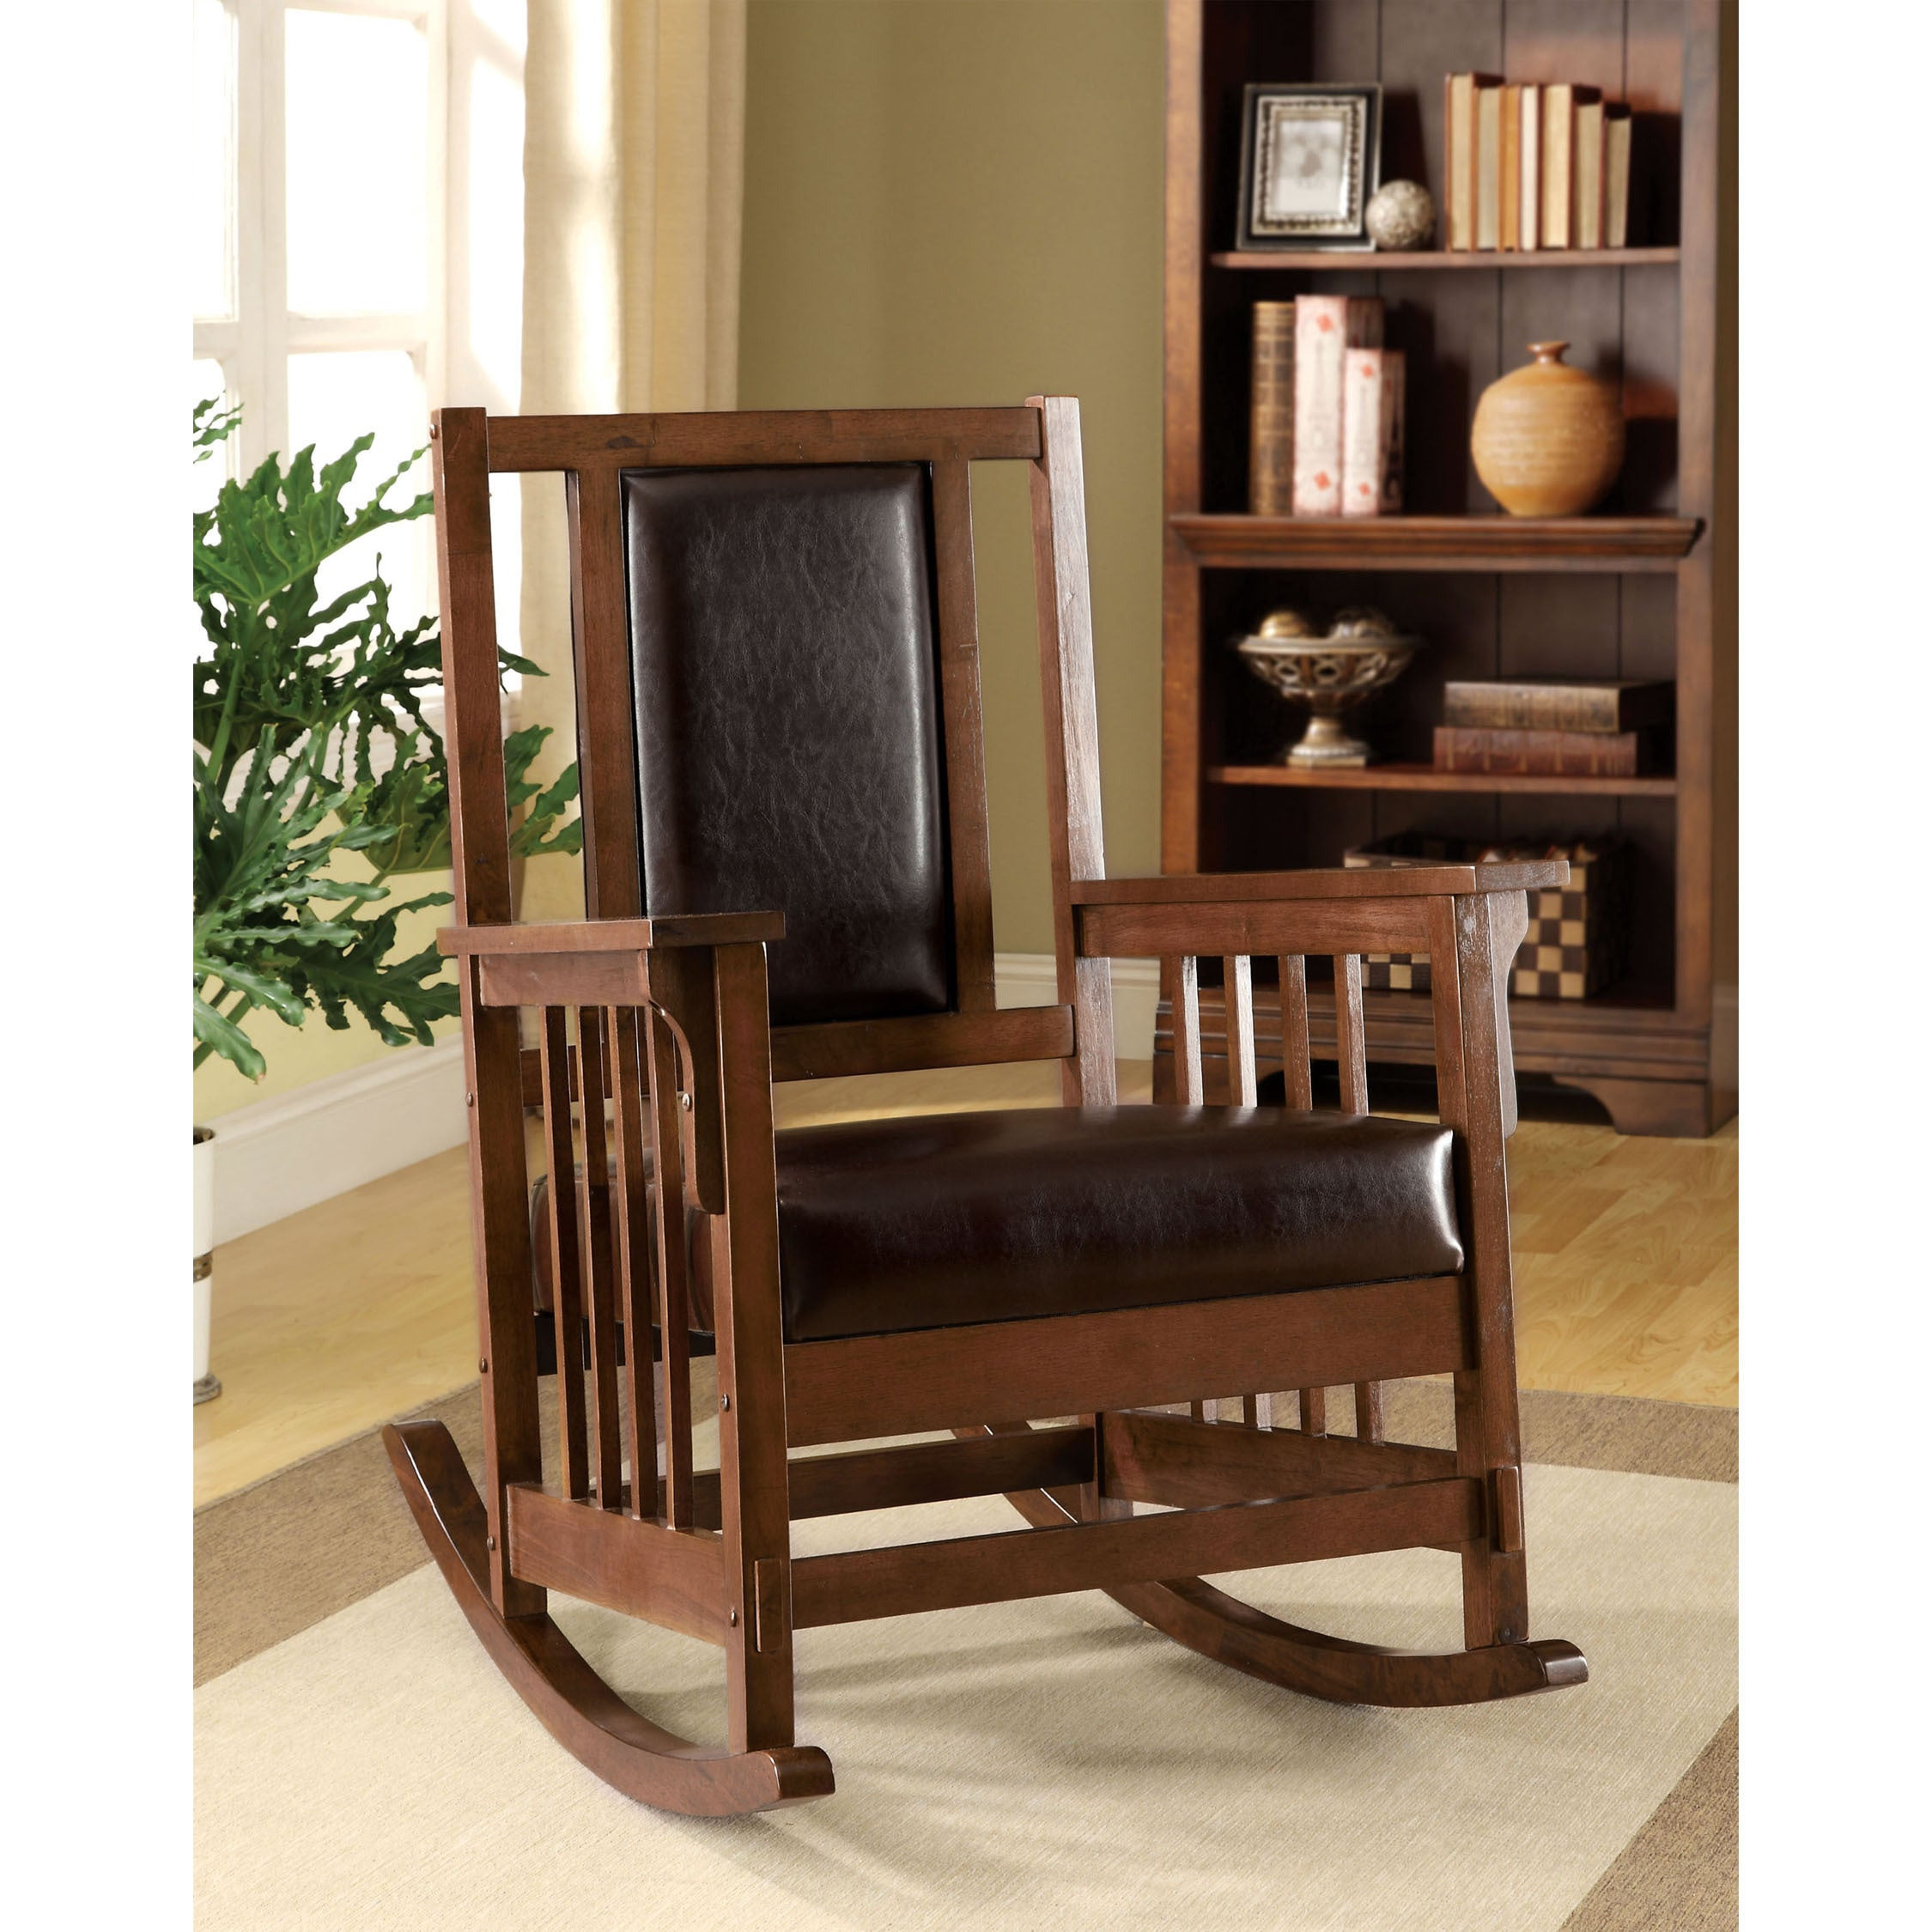 Buy Rocking Chairs, Traditional Living Room Chairs Online At Within Radford Traditional Rocking Chairs (View 7 of 20)